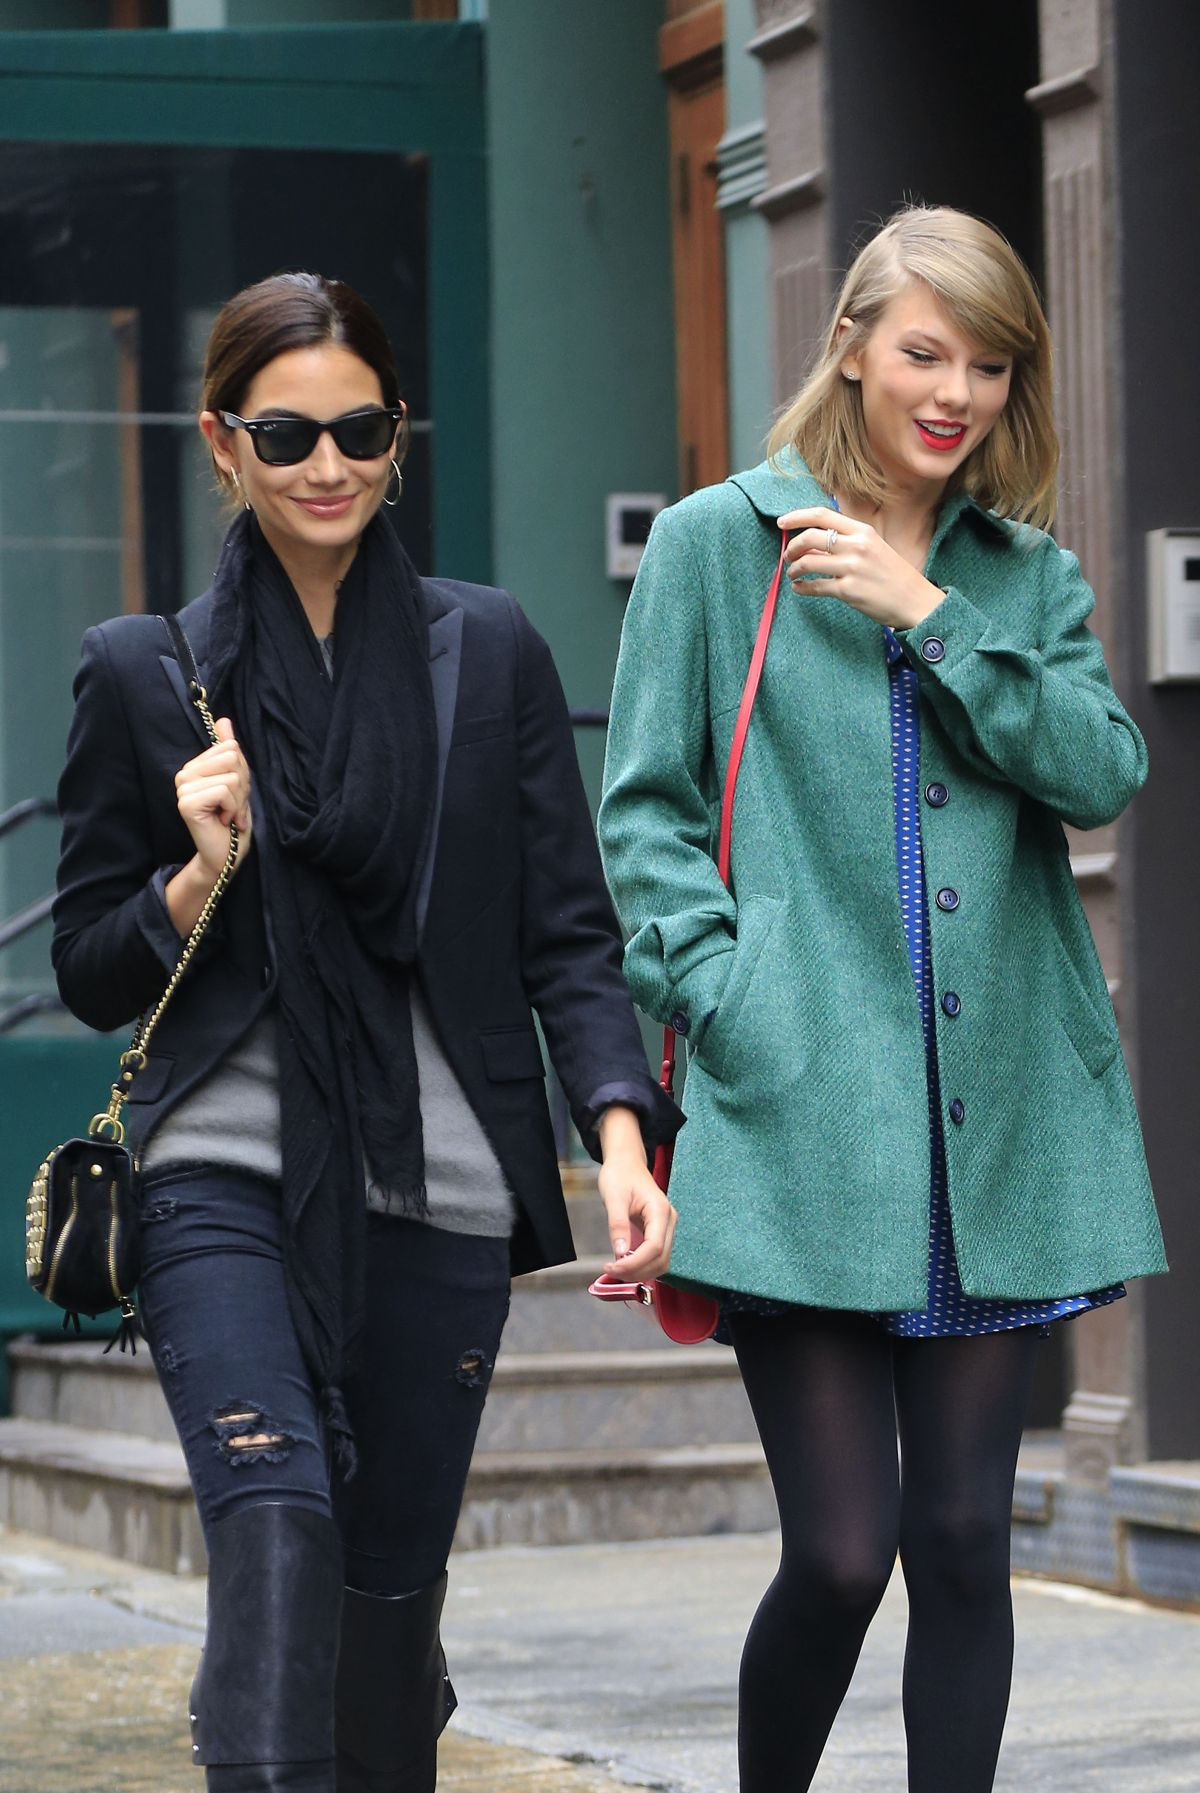 Lily aldridge out for lunch at locanda verde restaurant in new york